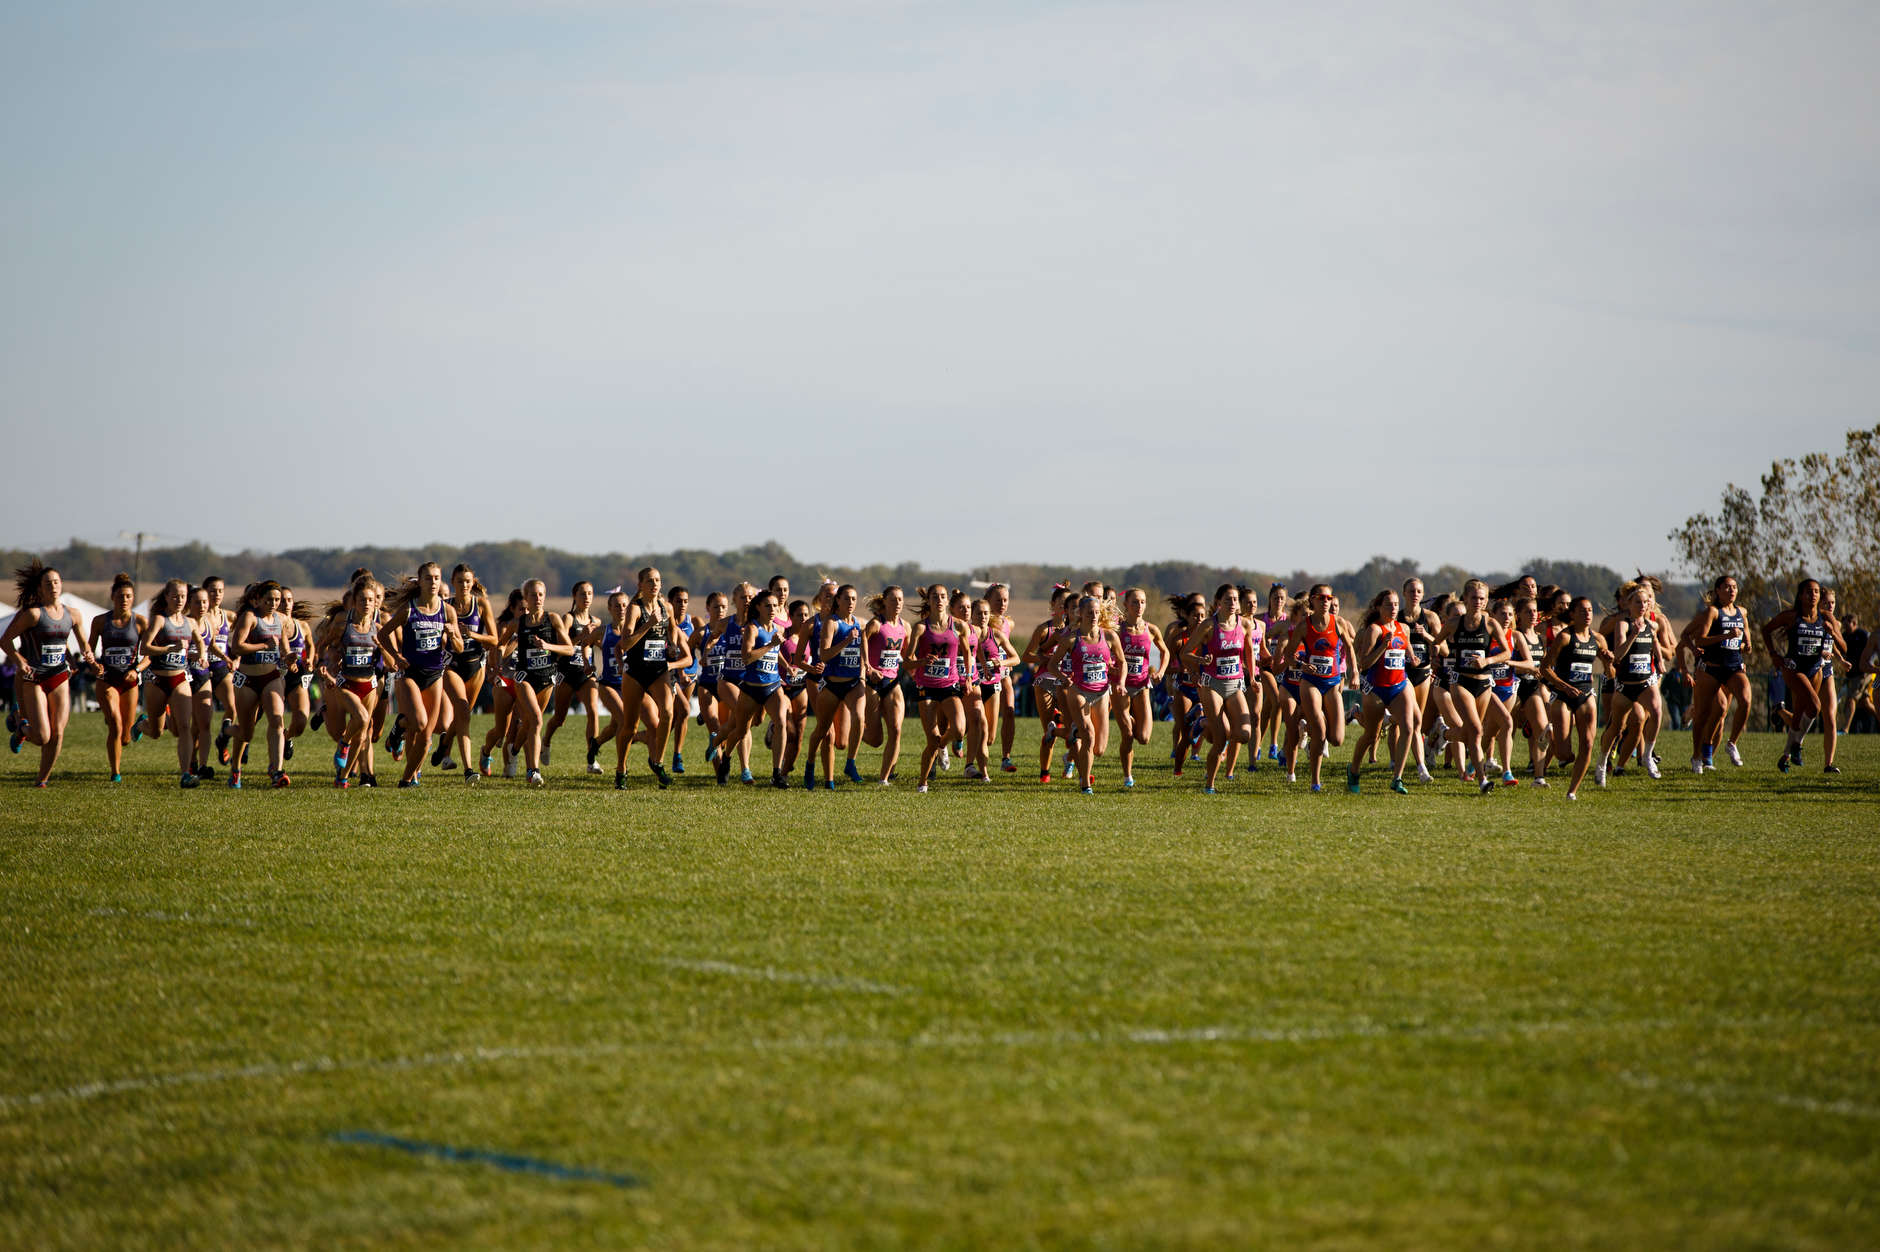 Michigan runners compete during the Indiana State Pre-National Cross Country Invitational in Terre Haute, Indiana on Saturday, Oct. 19, 2019. (Photo by James Brosher)